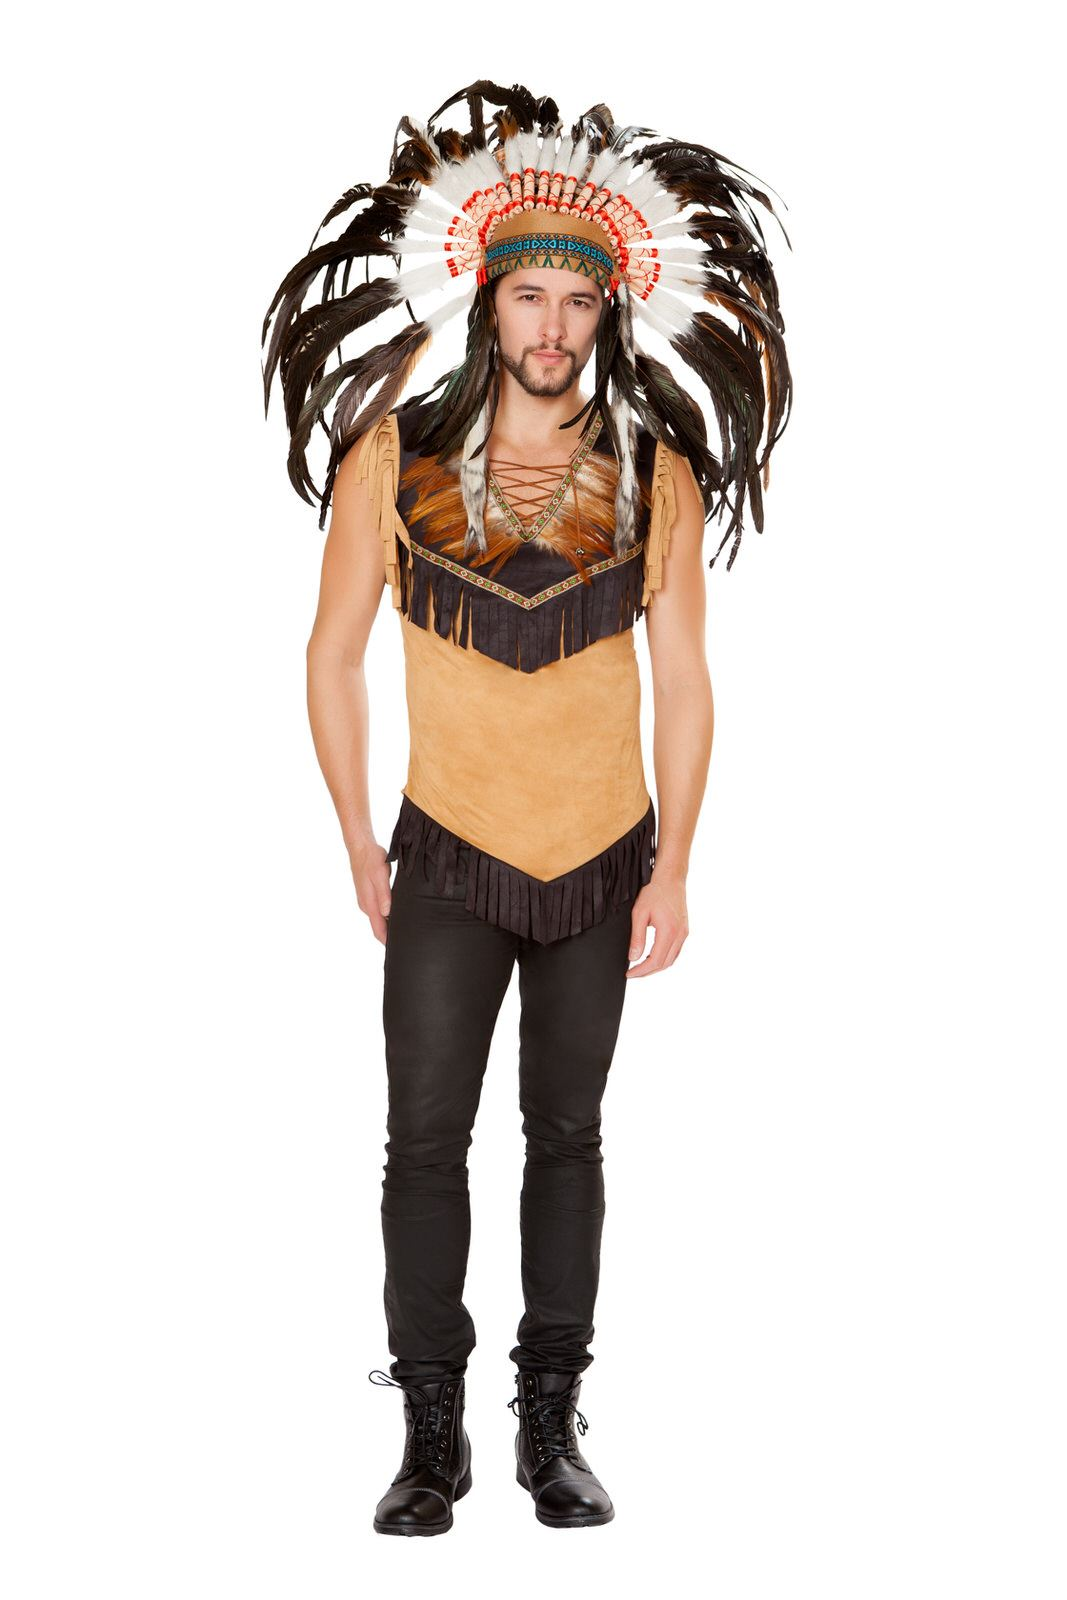 Adult Native Indian Men Costume ...  sc 1 st  The Costume Land & Adult Native Indian Men Costume | $38.99 | The Costume Land